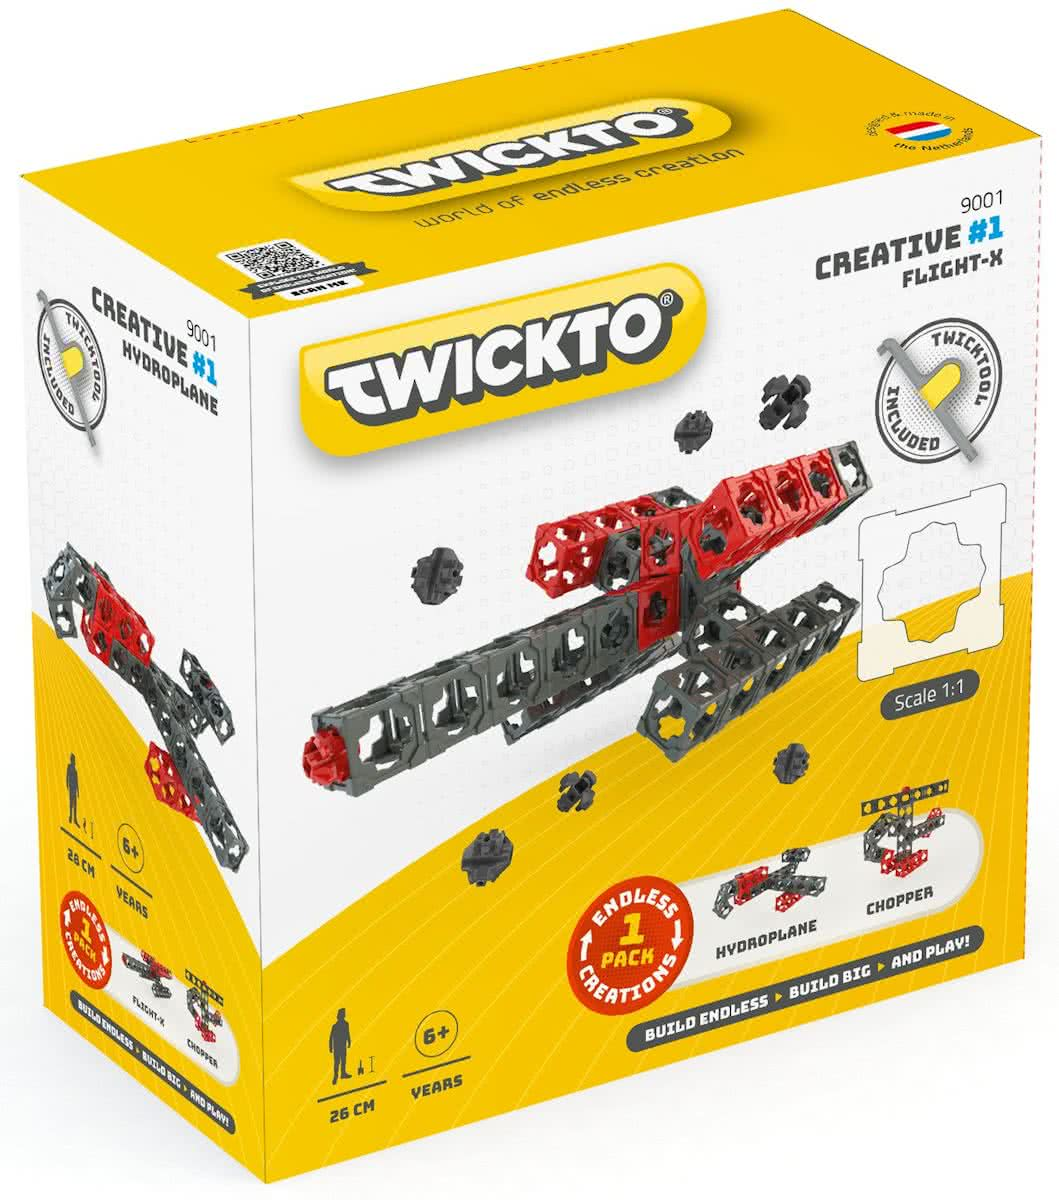 Twickto Creative Pack 1: 23-delig